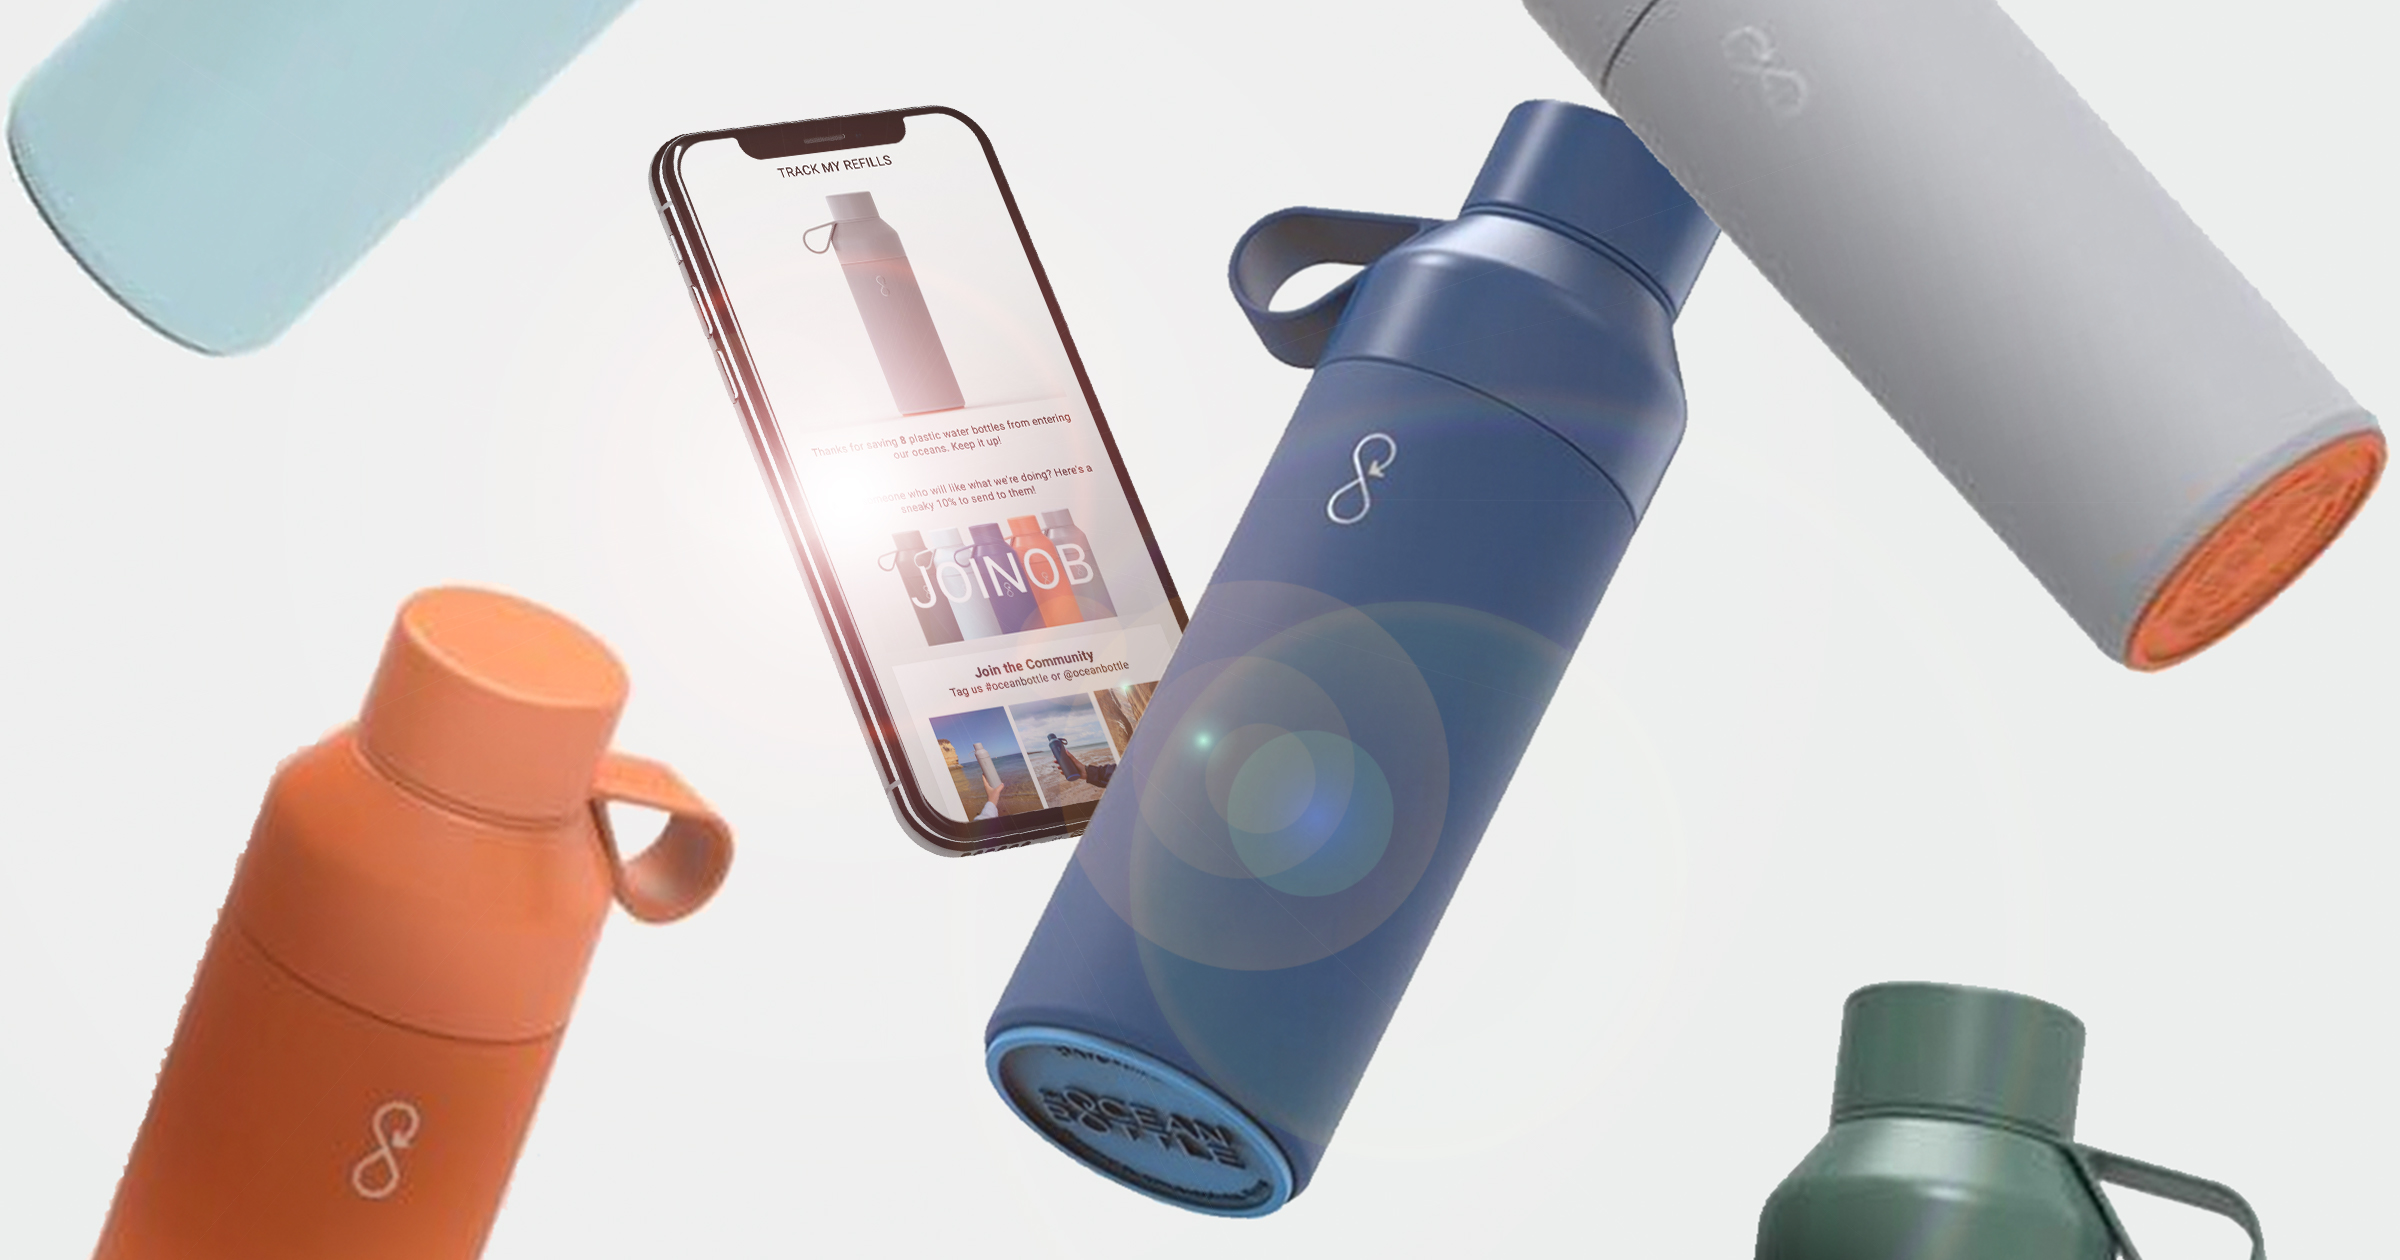 How Smart Products and Packaging Can Promote Positive Consumer Habits